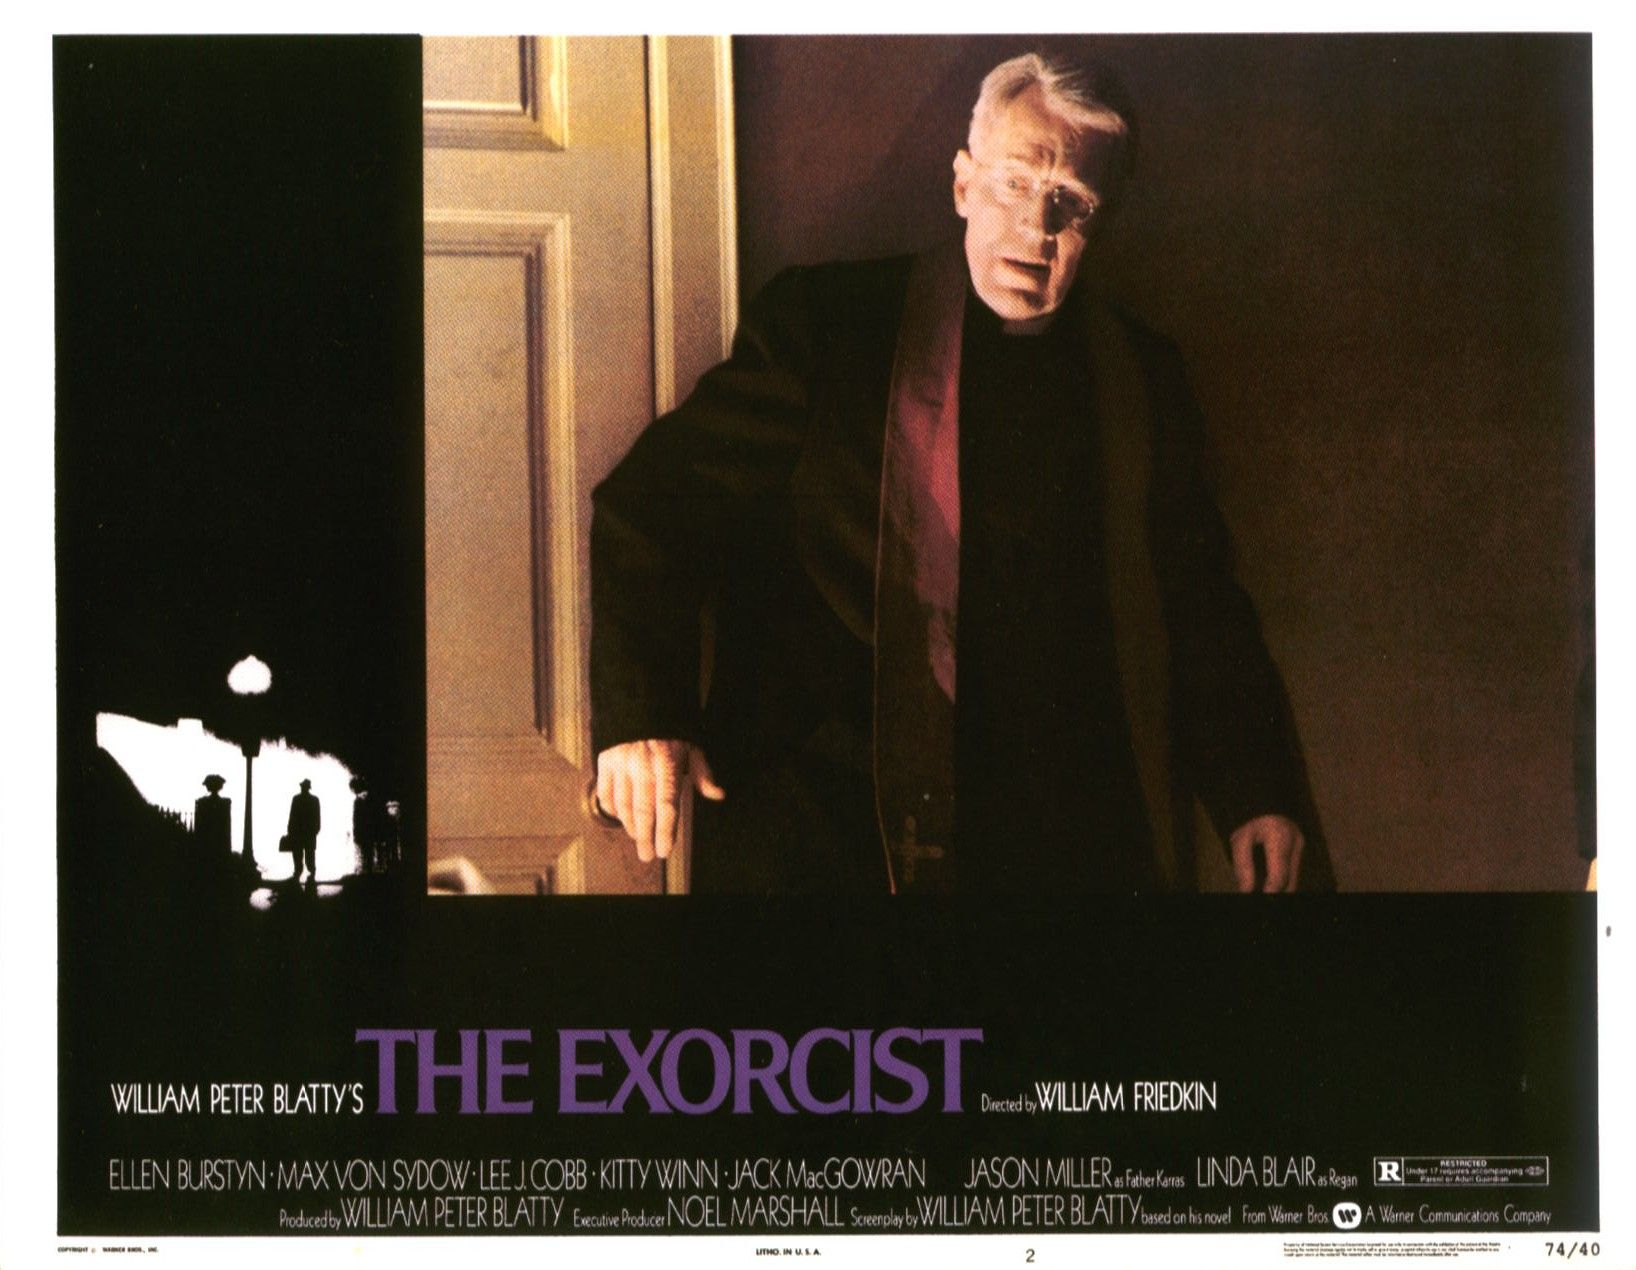 El Exorcista Libro El Exorcista 1973 El Exorcista The Exorcist 1973 The